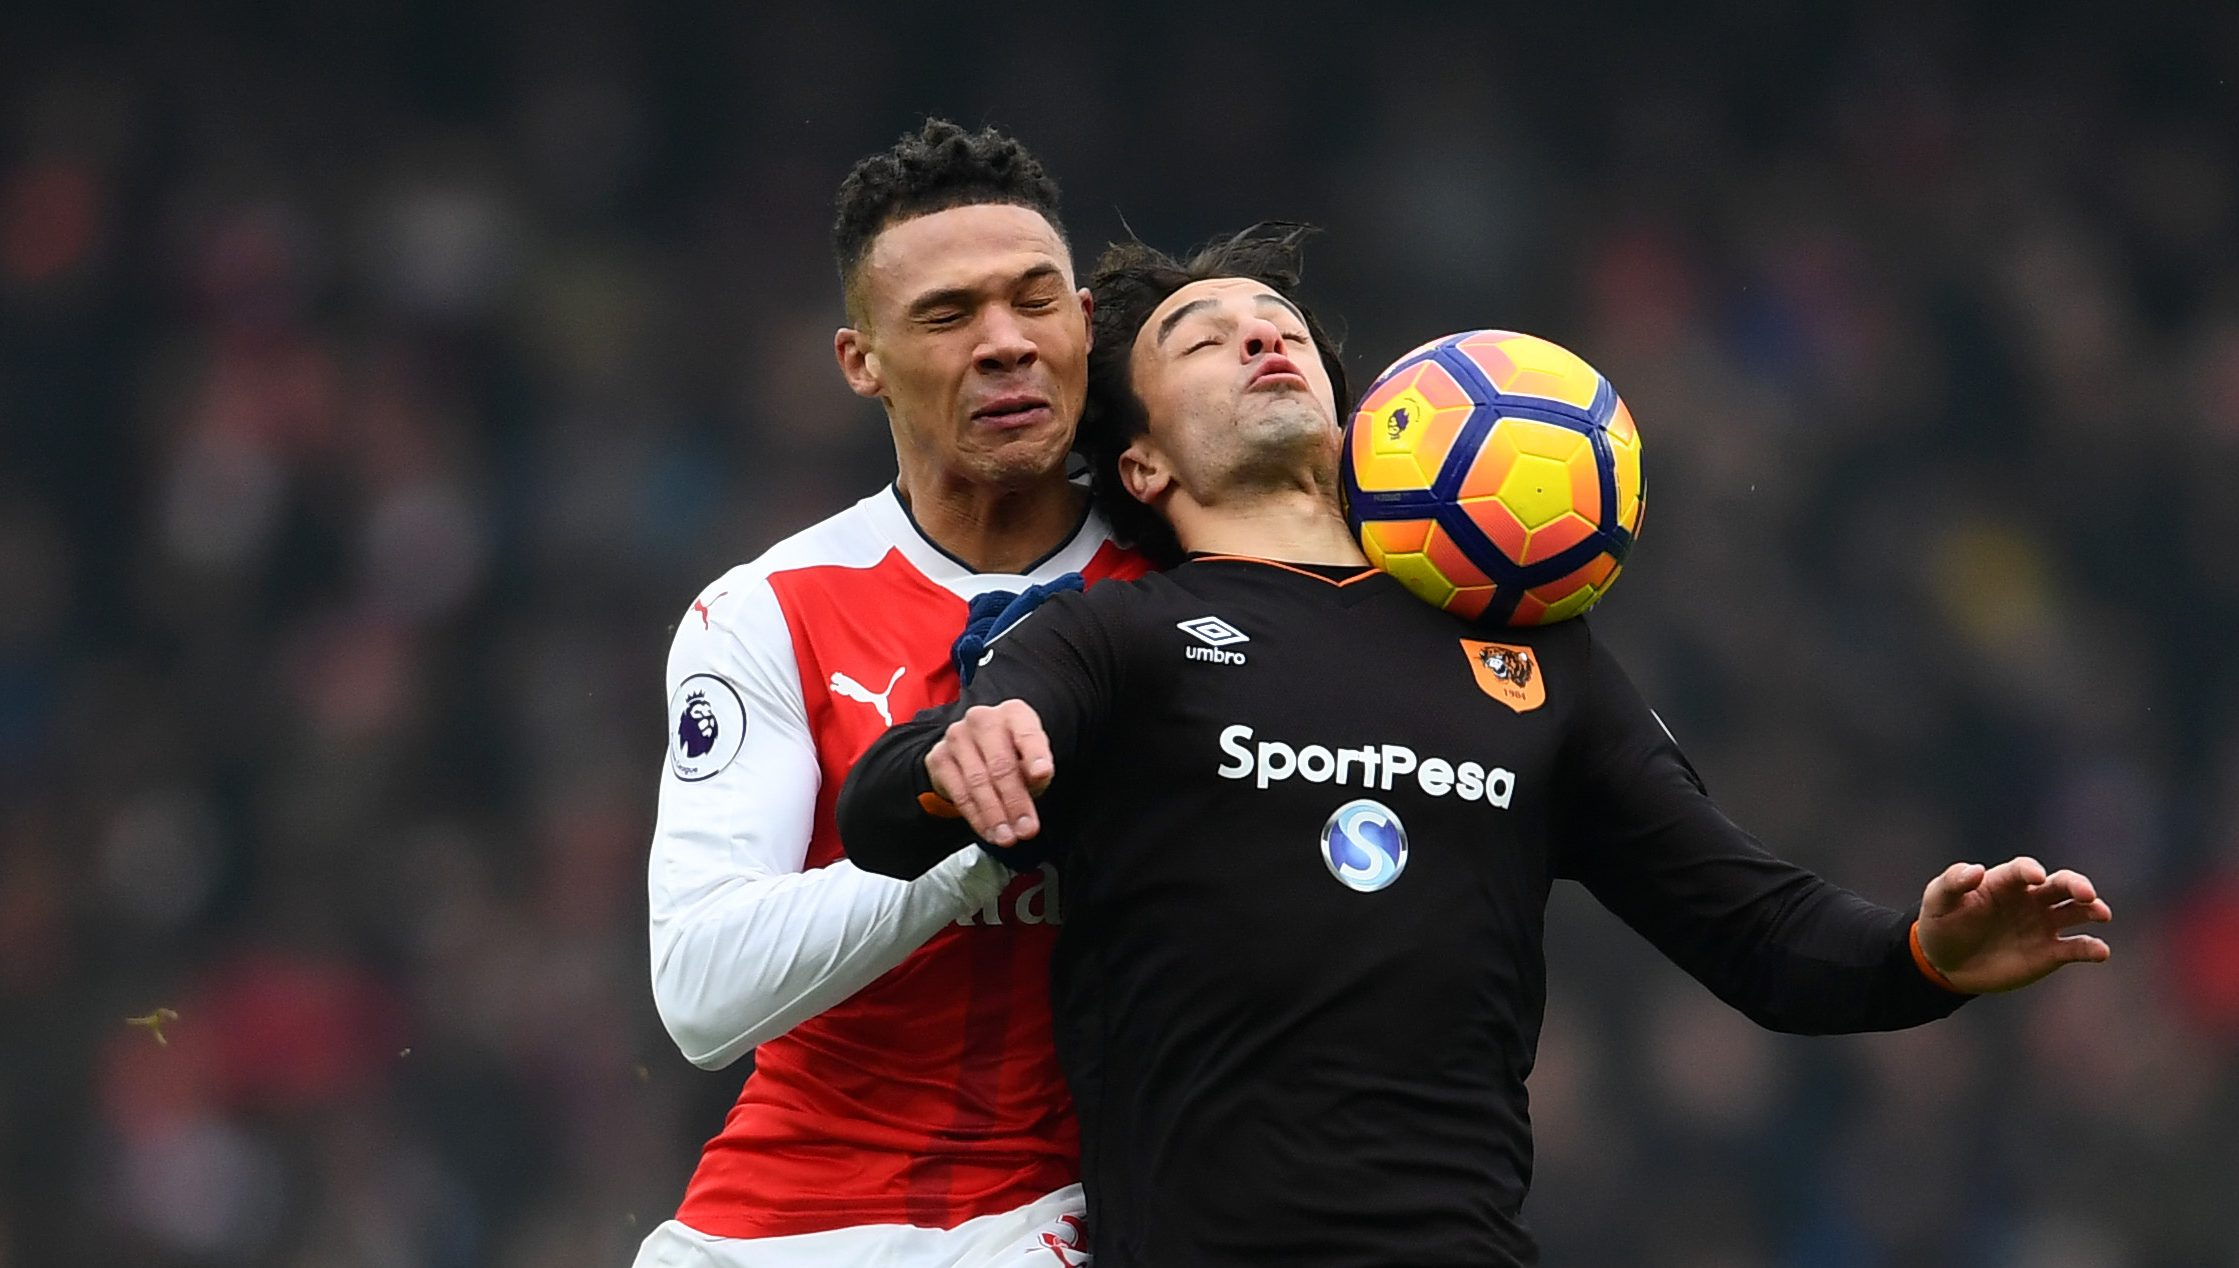 Kieran Gibbs reveals the reason why Mark Clattenburg didn't send him off